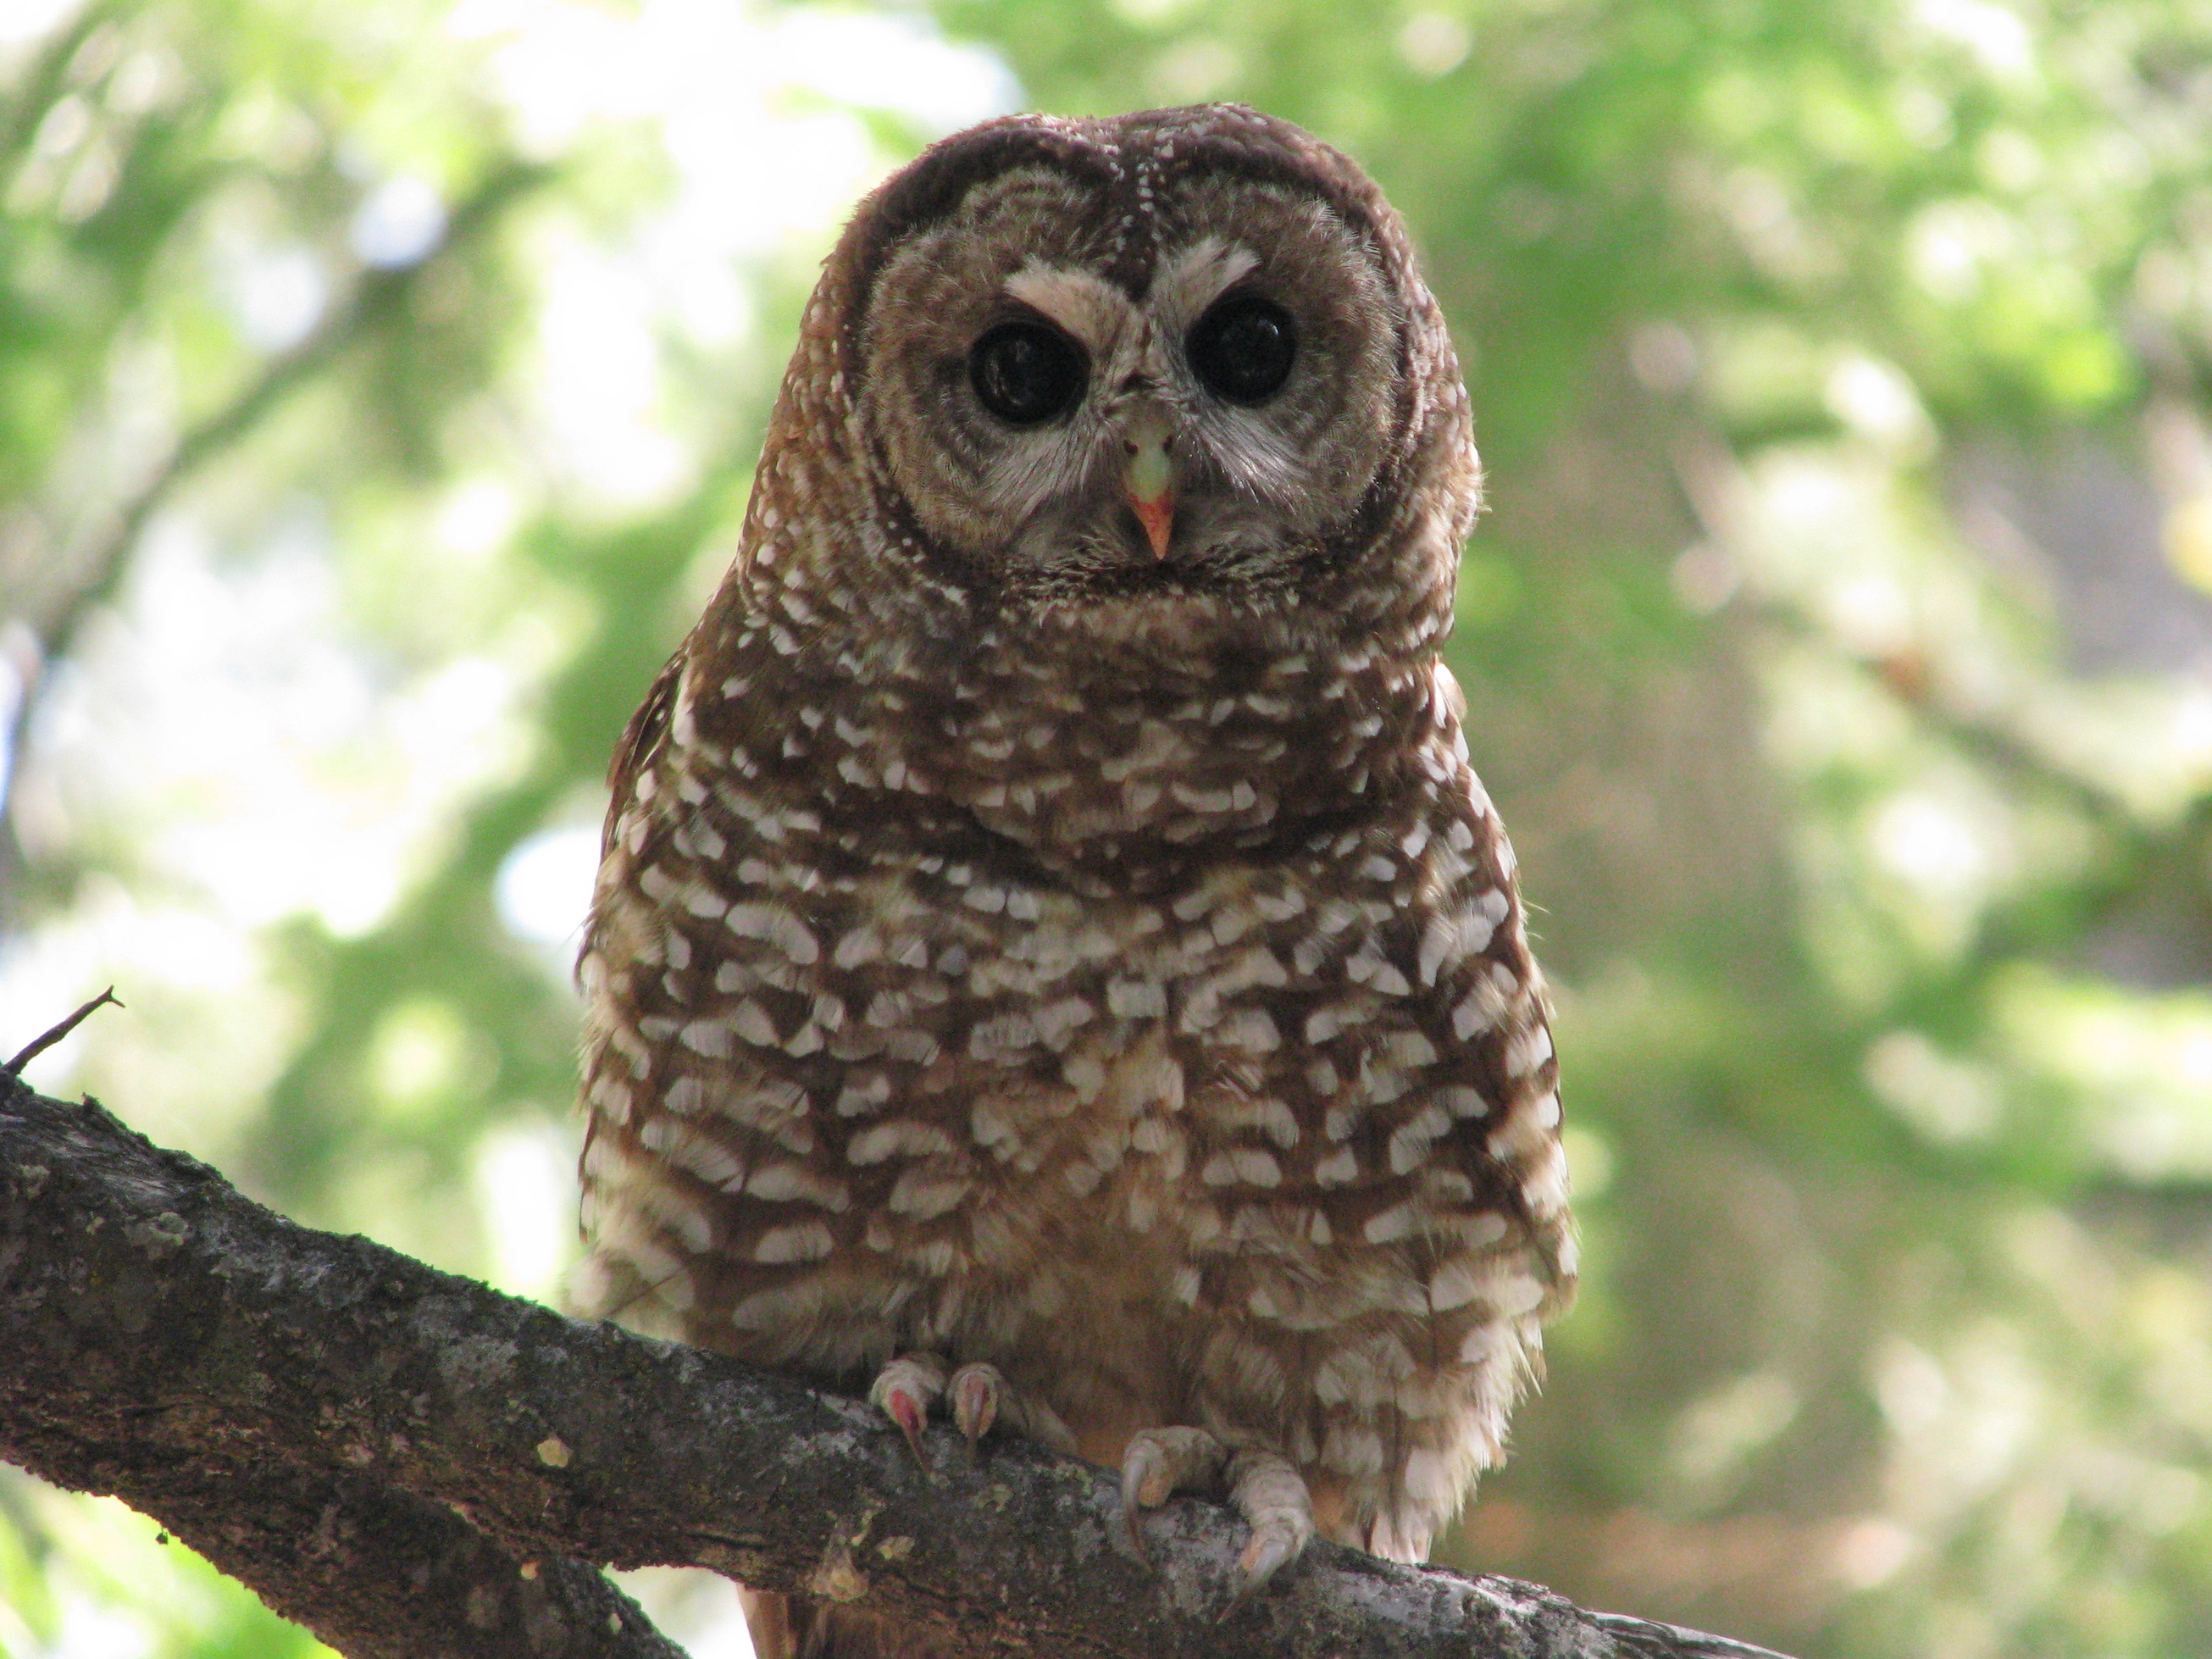 A new study reveals that wildfires can benefit spotted owls by reshaping the land to their advantage and build new habitats.